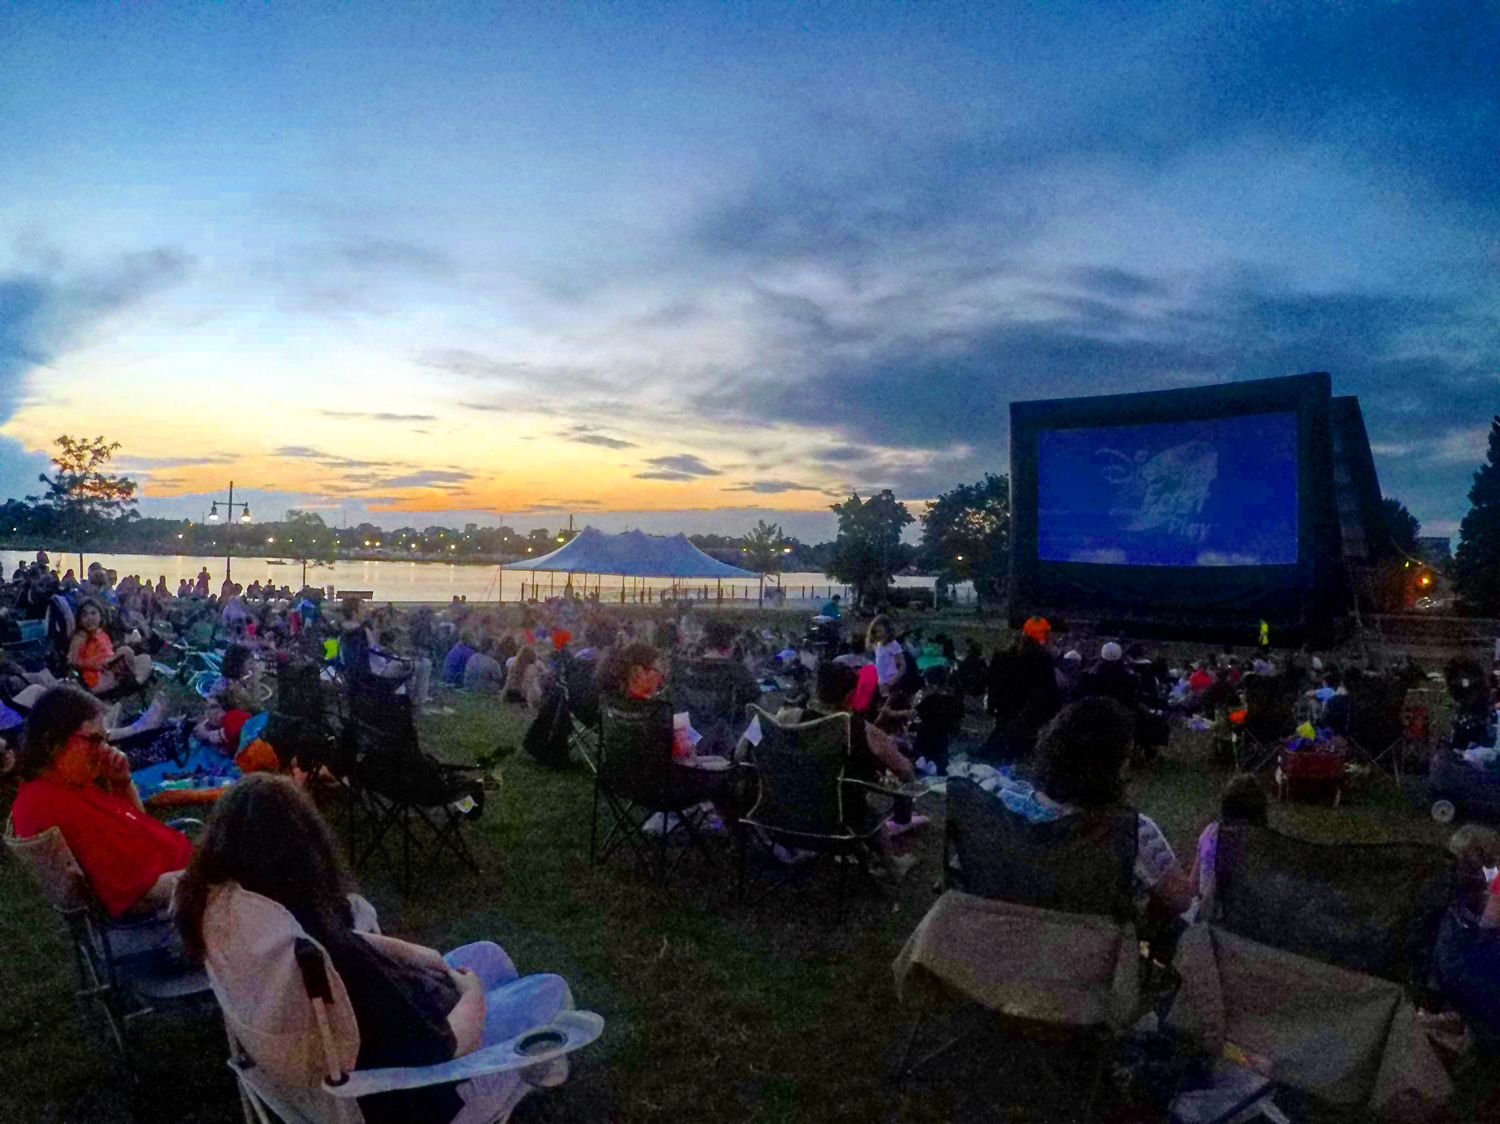 Tuesday night movies at the park